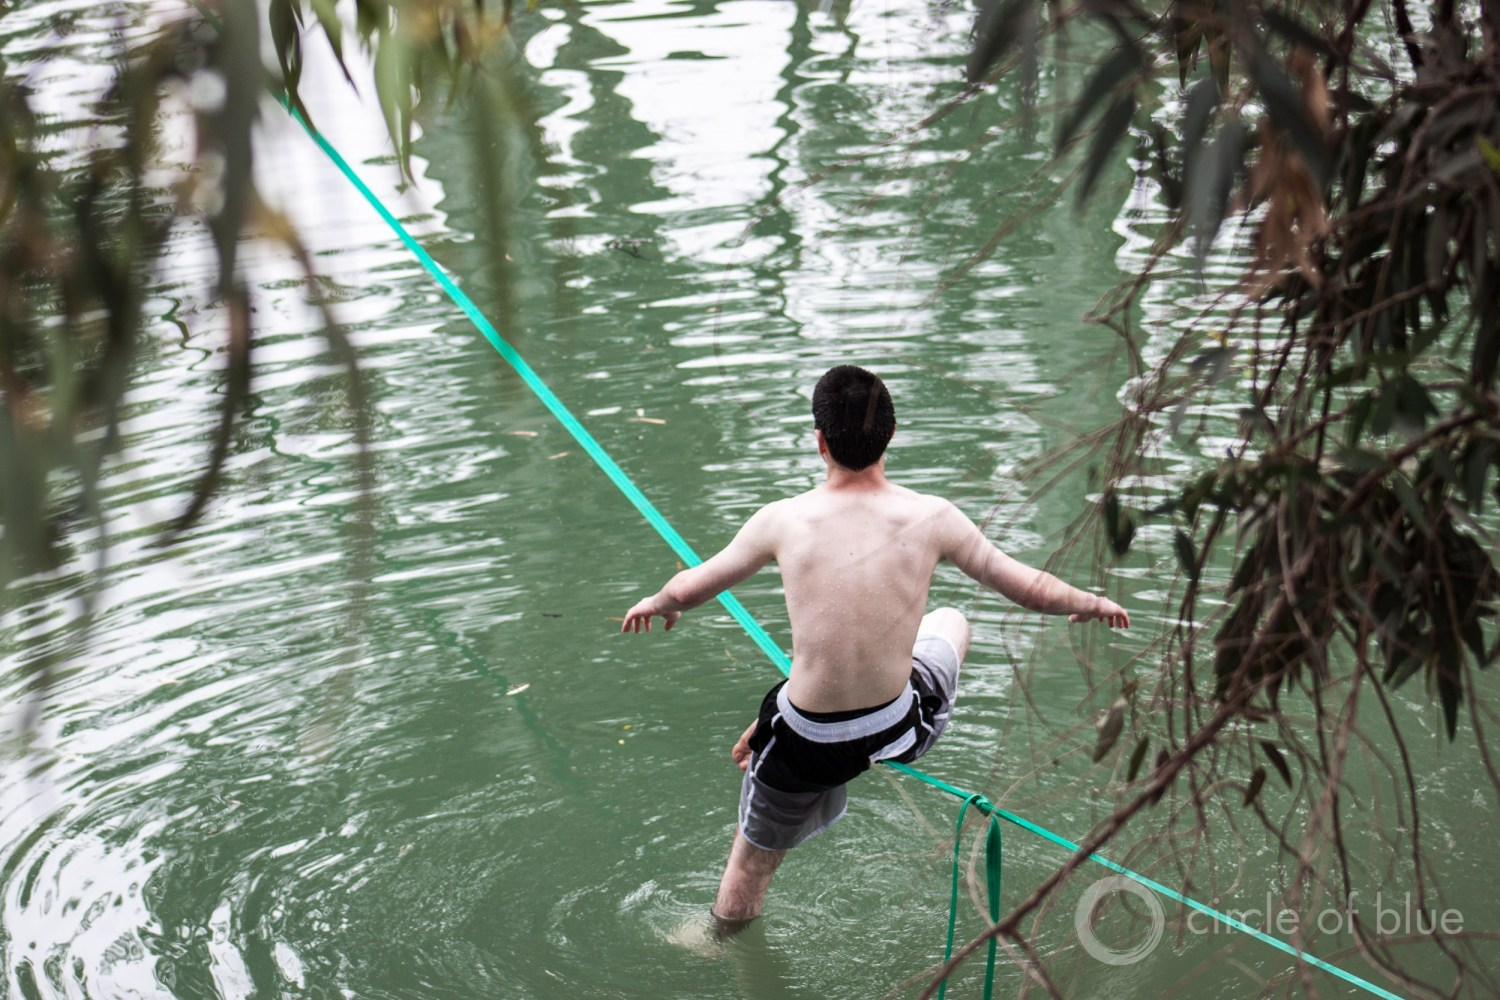 A teenager balances on a slack line looped between trees across the Jordan River, near Lake Kinneret. Though monumental in history and politics, the Jordan is not a large river. Photo © Brett Walton / Circle of Blue